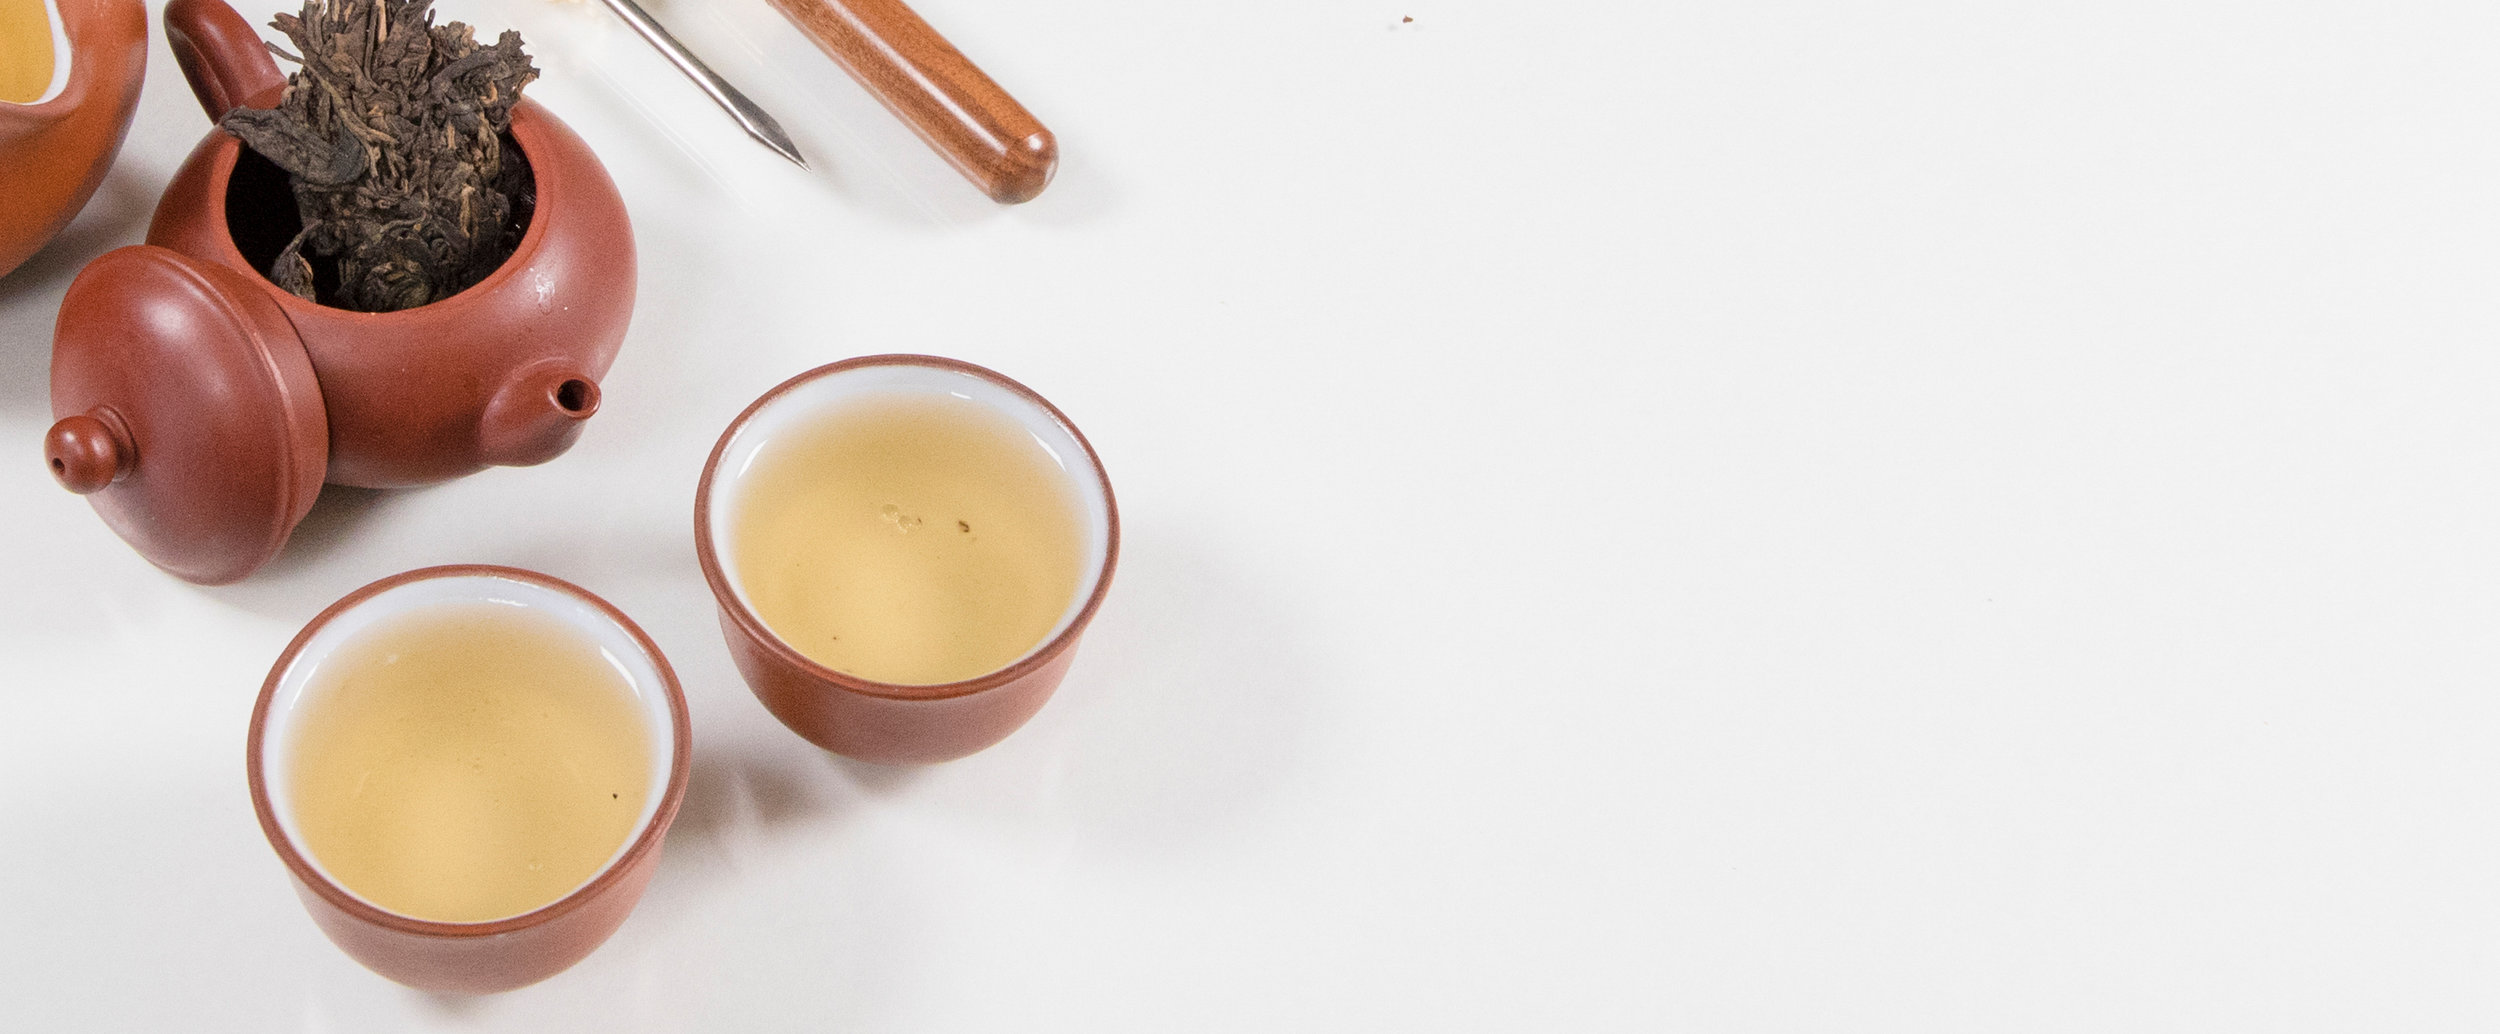 How to brew Fermented Tea Puer